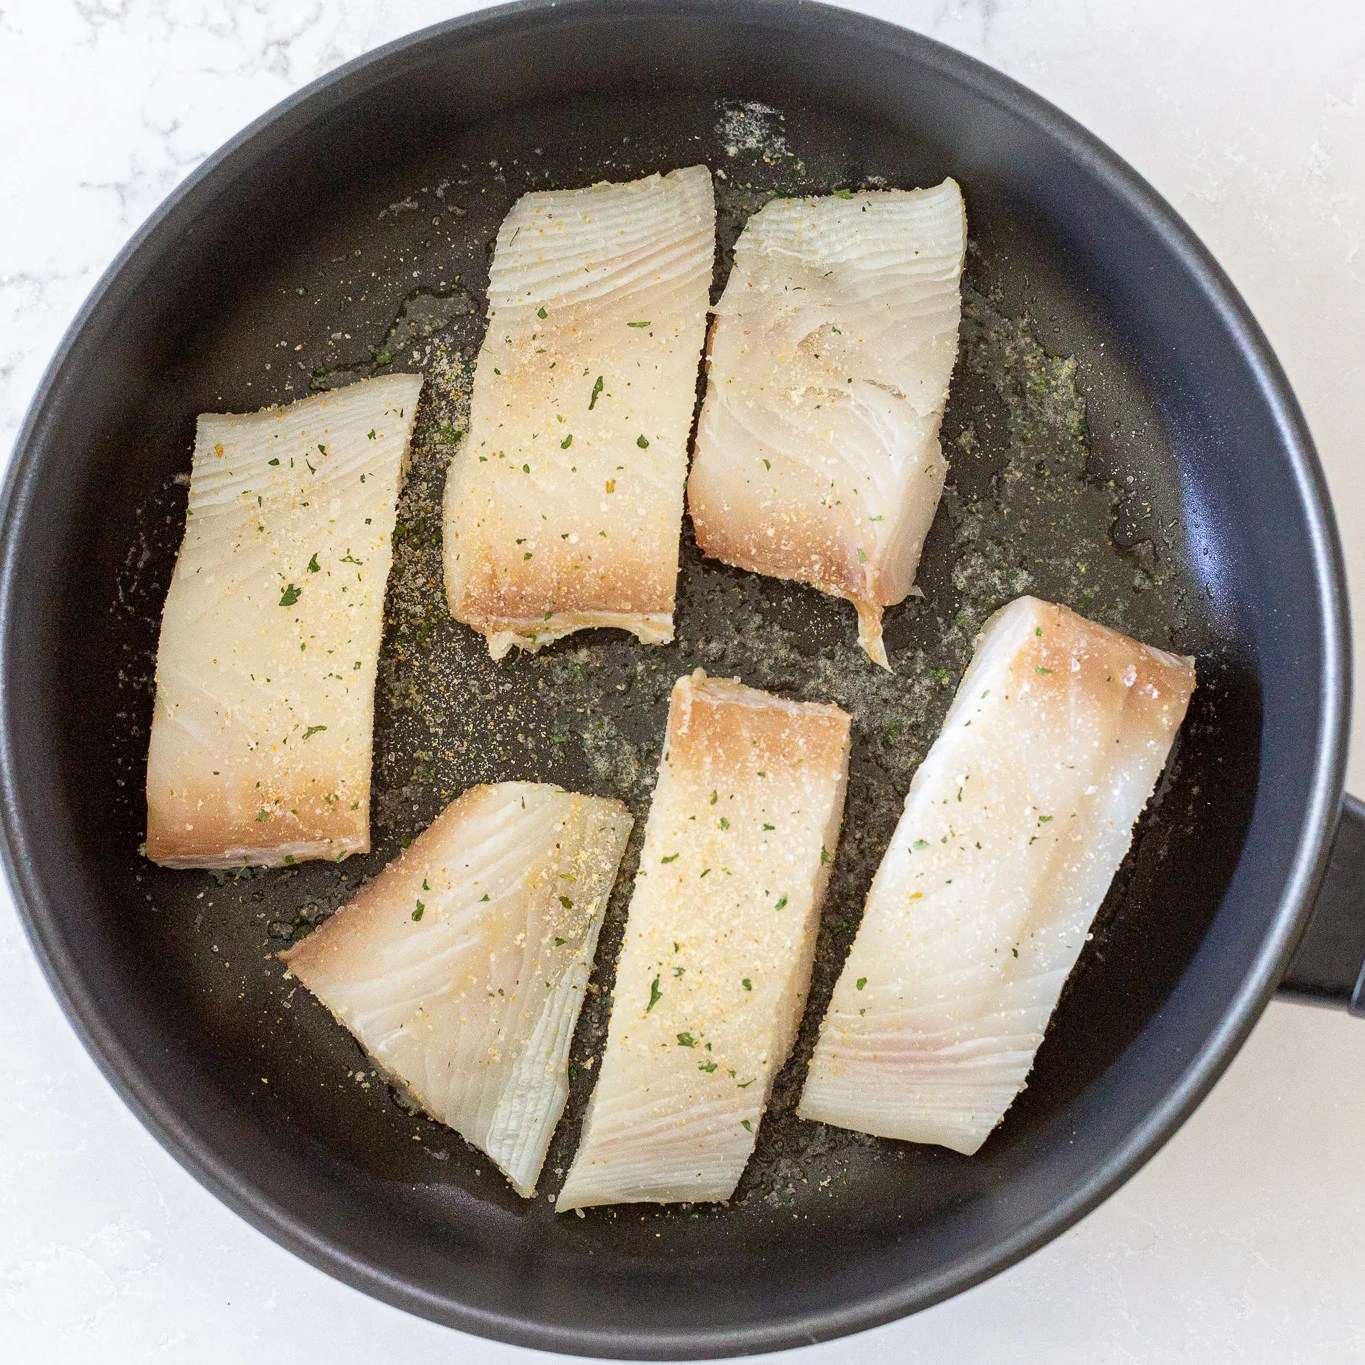 halibut cooking in a pan